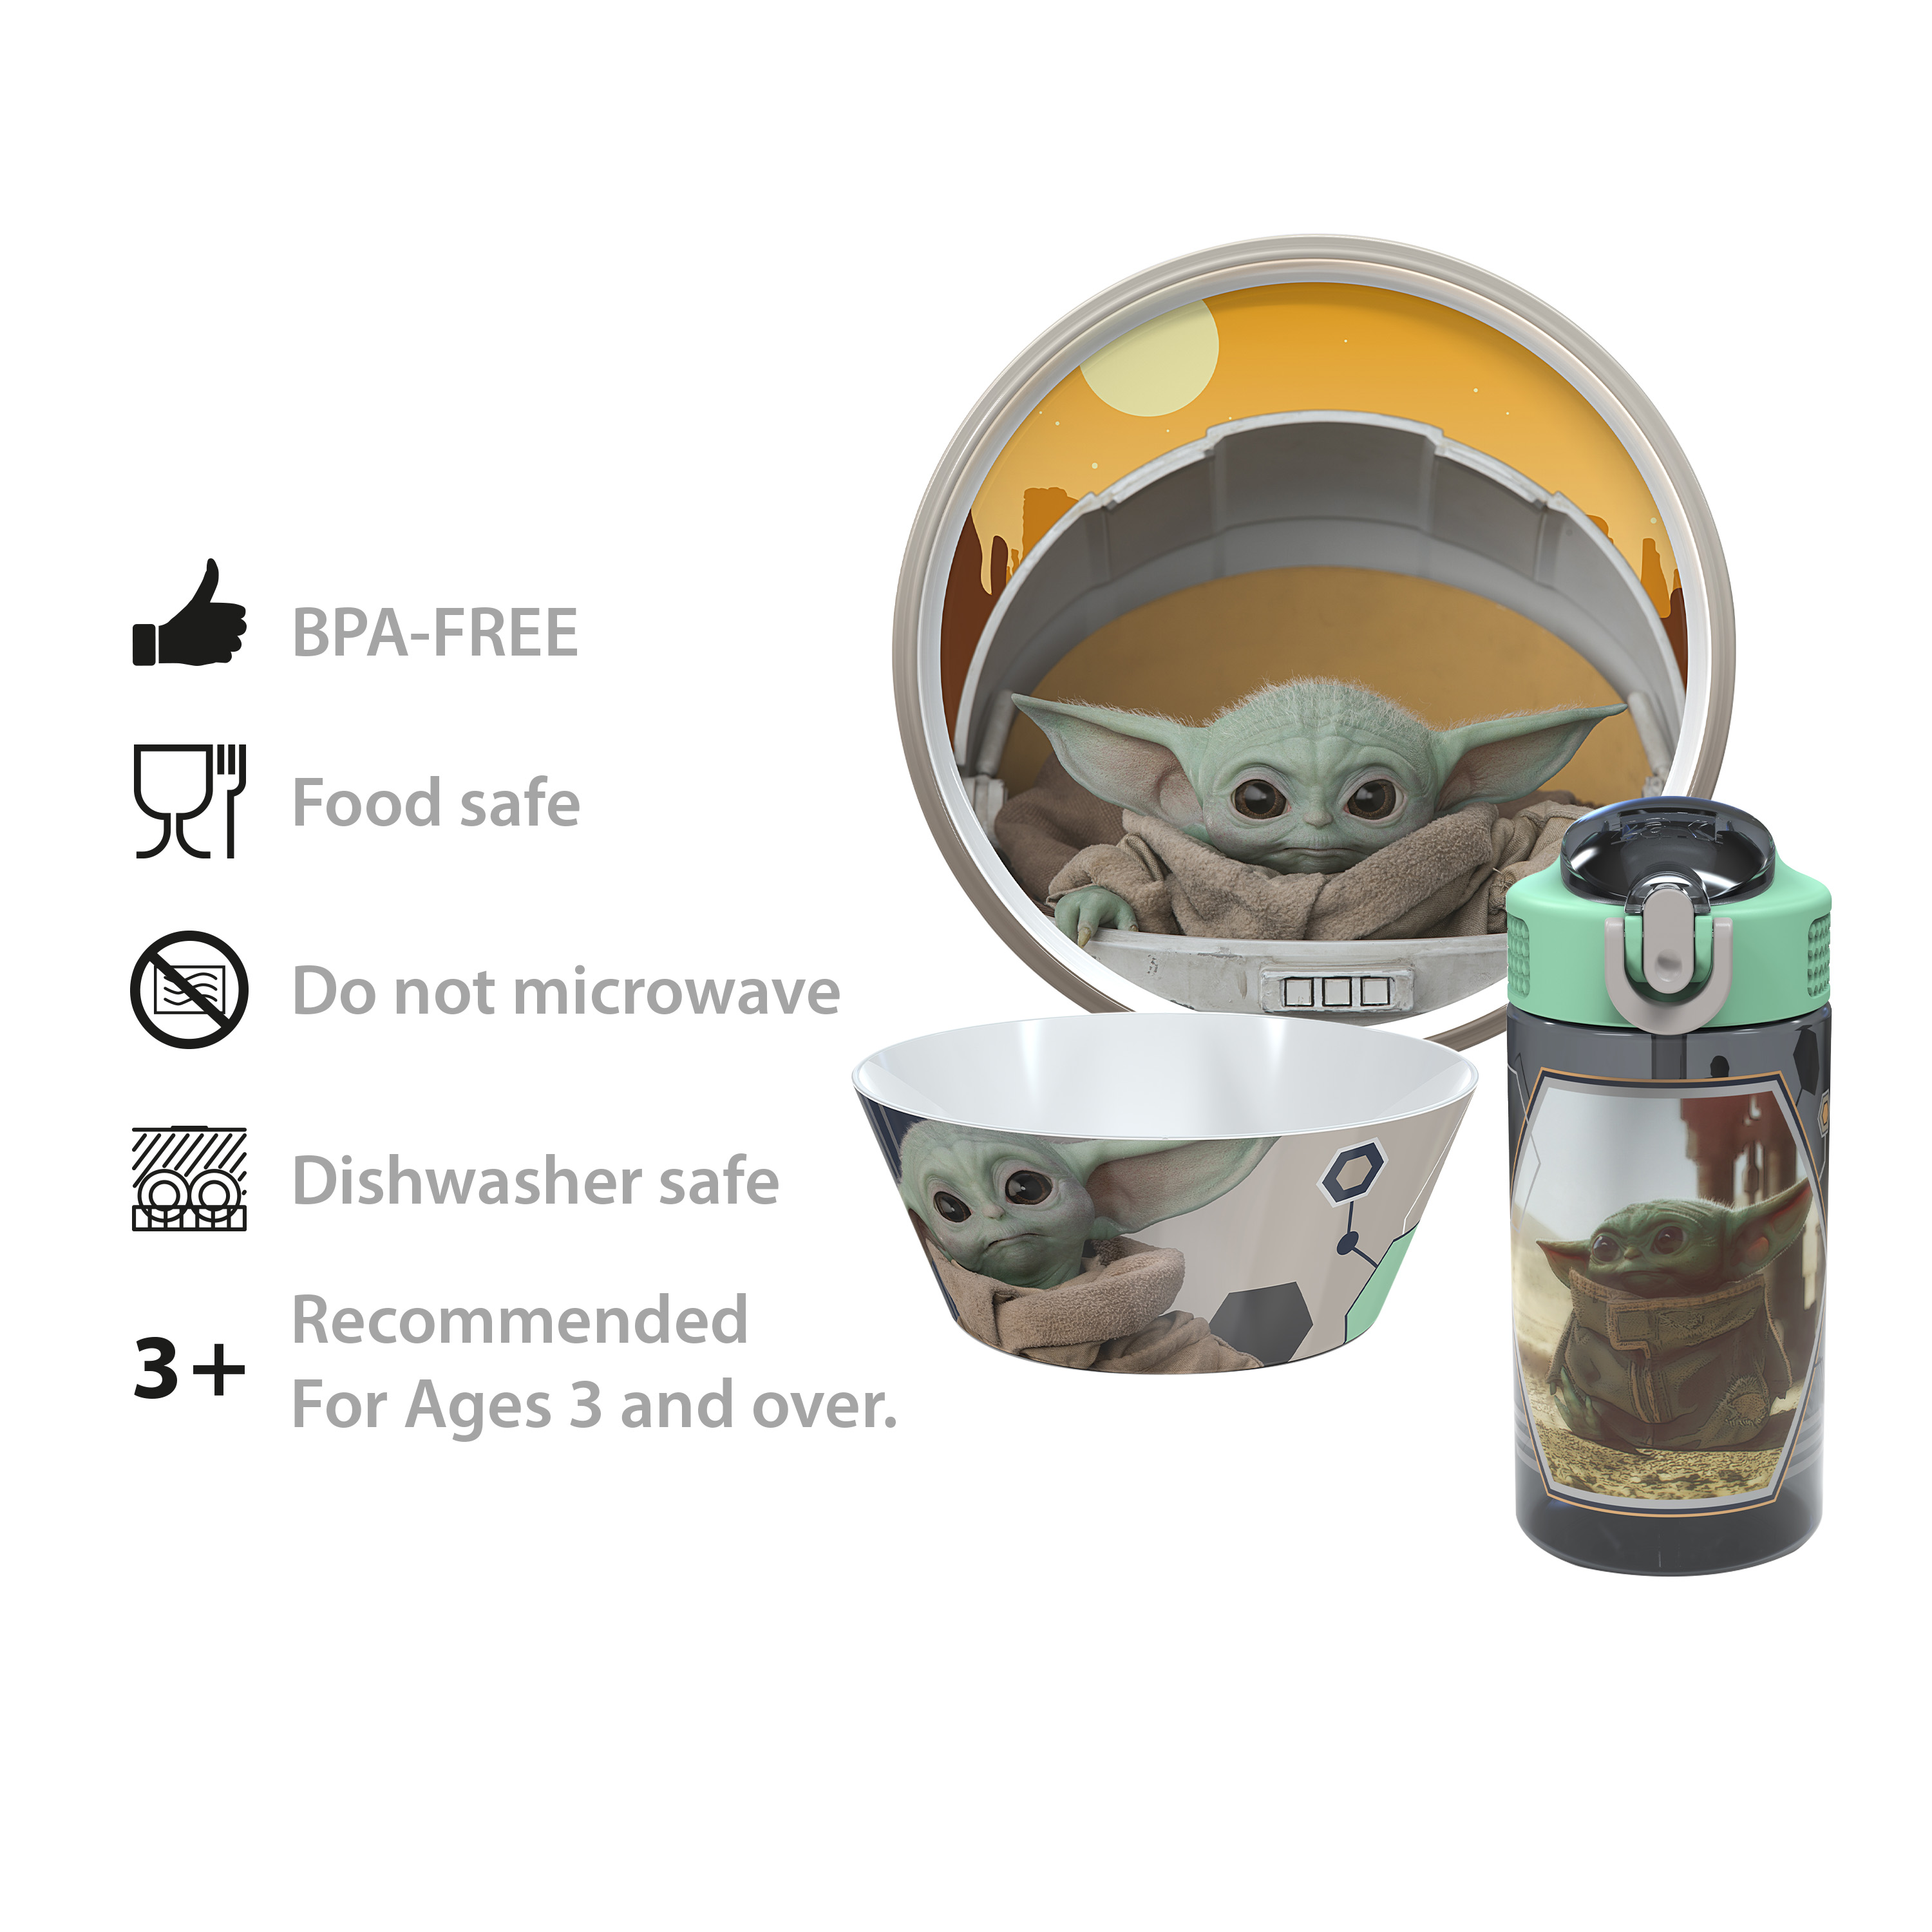 Star Wars: The Mandalorian Plate, Bowl and Water Bottle, The Child (Baby Yoda), 3-piece set slideshow image 15